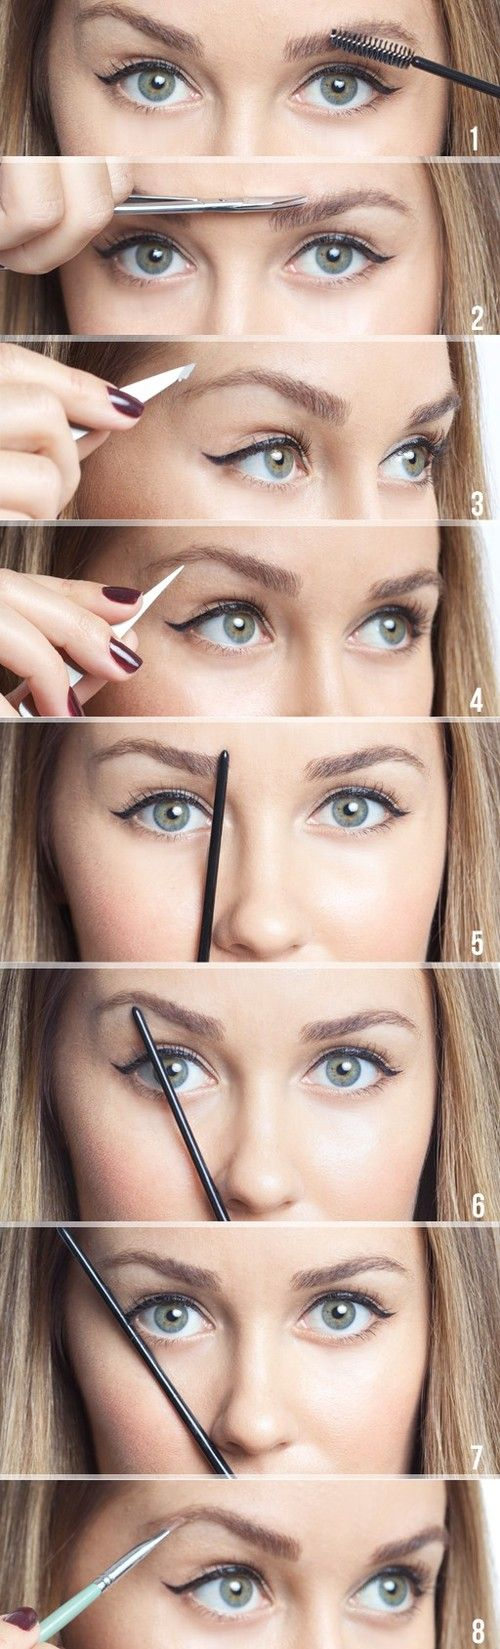 How To Correctly Shape Up Your Eyebrows Beauty Tutorials